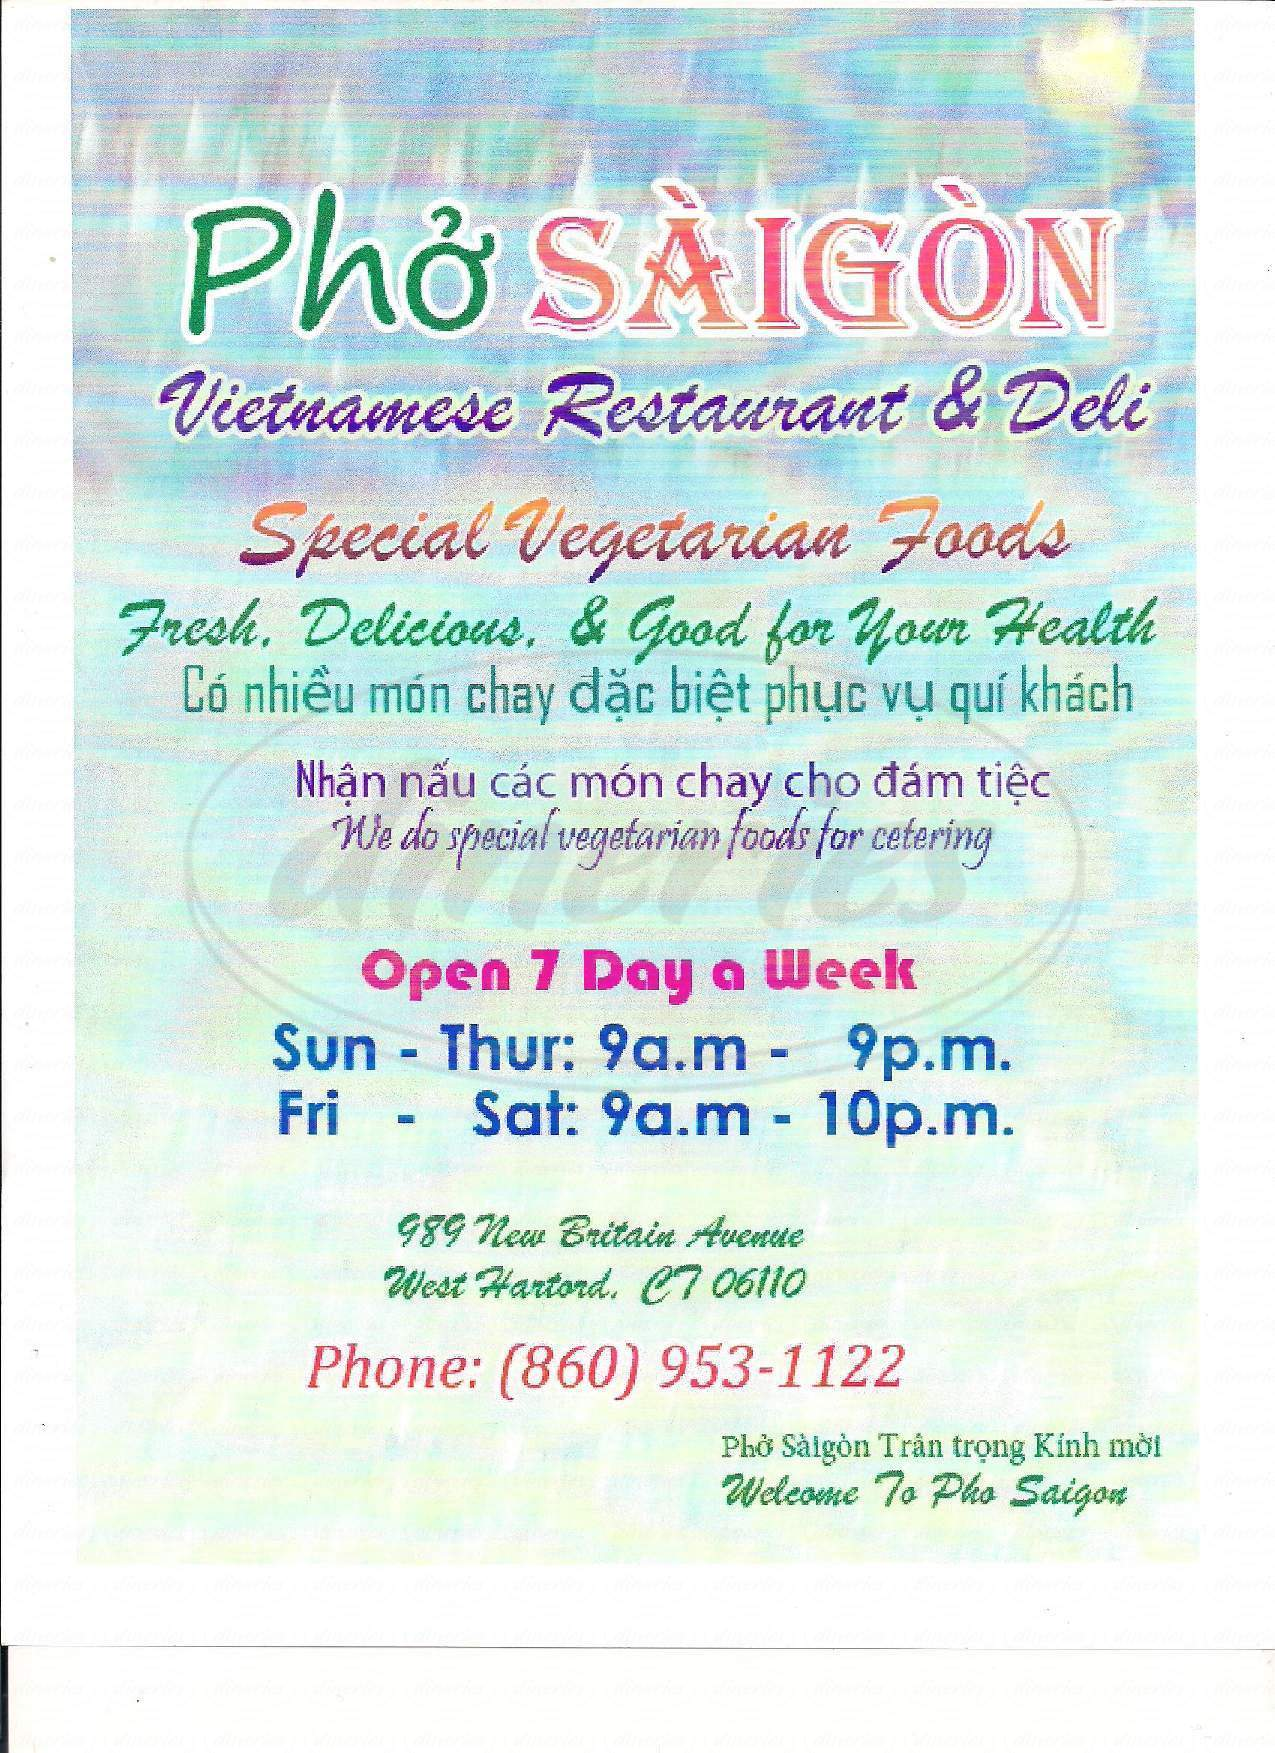 menu for Pho Saigon Authentic Vietnamese Restaurant & Deli